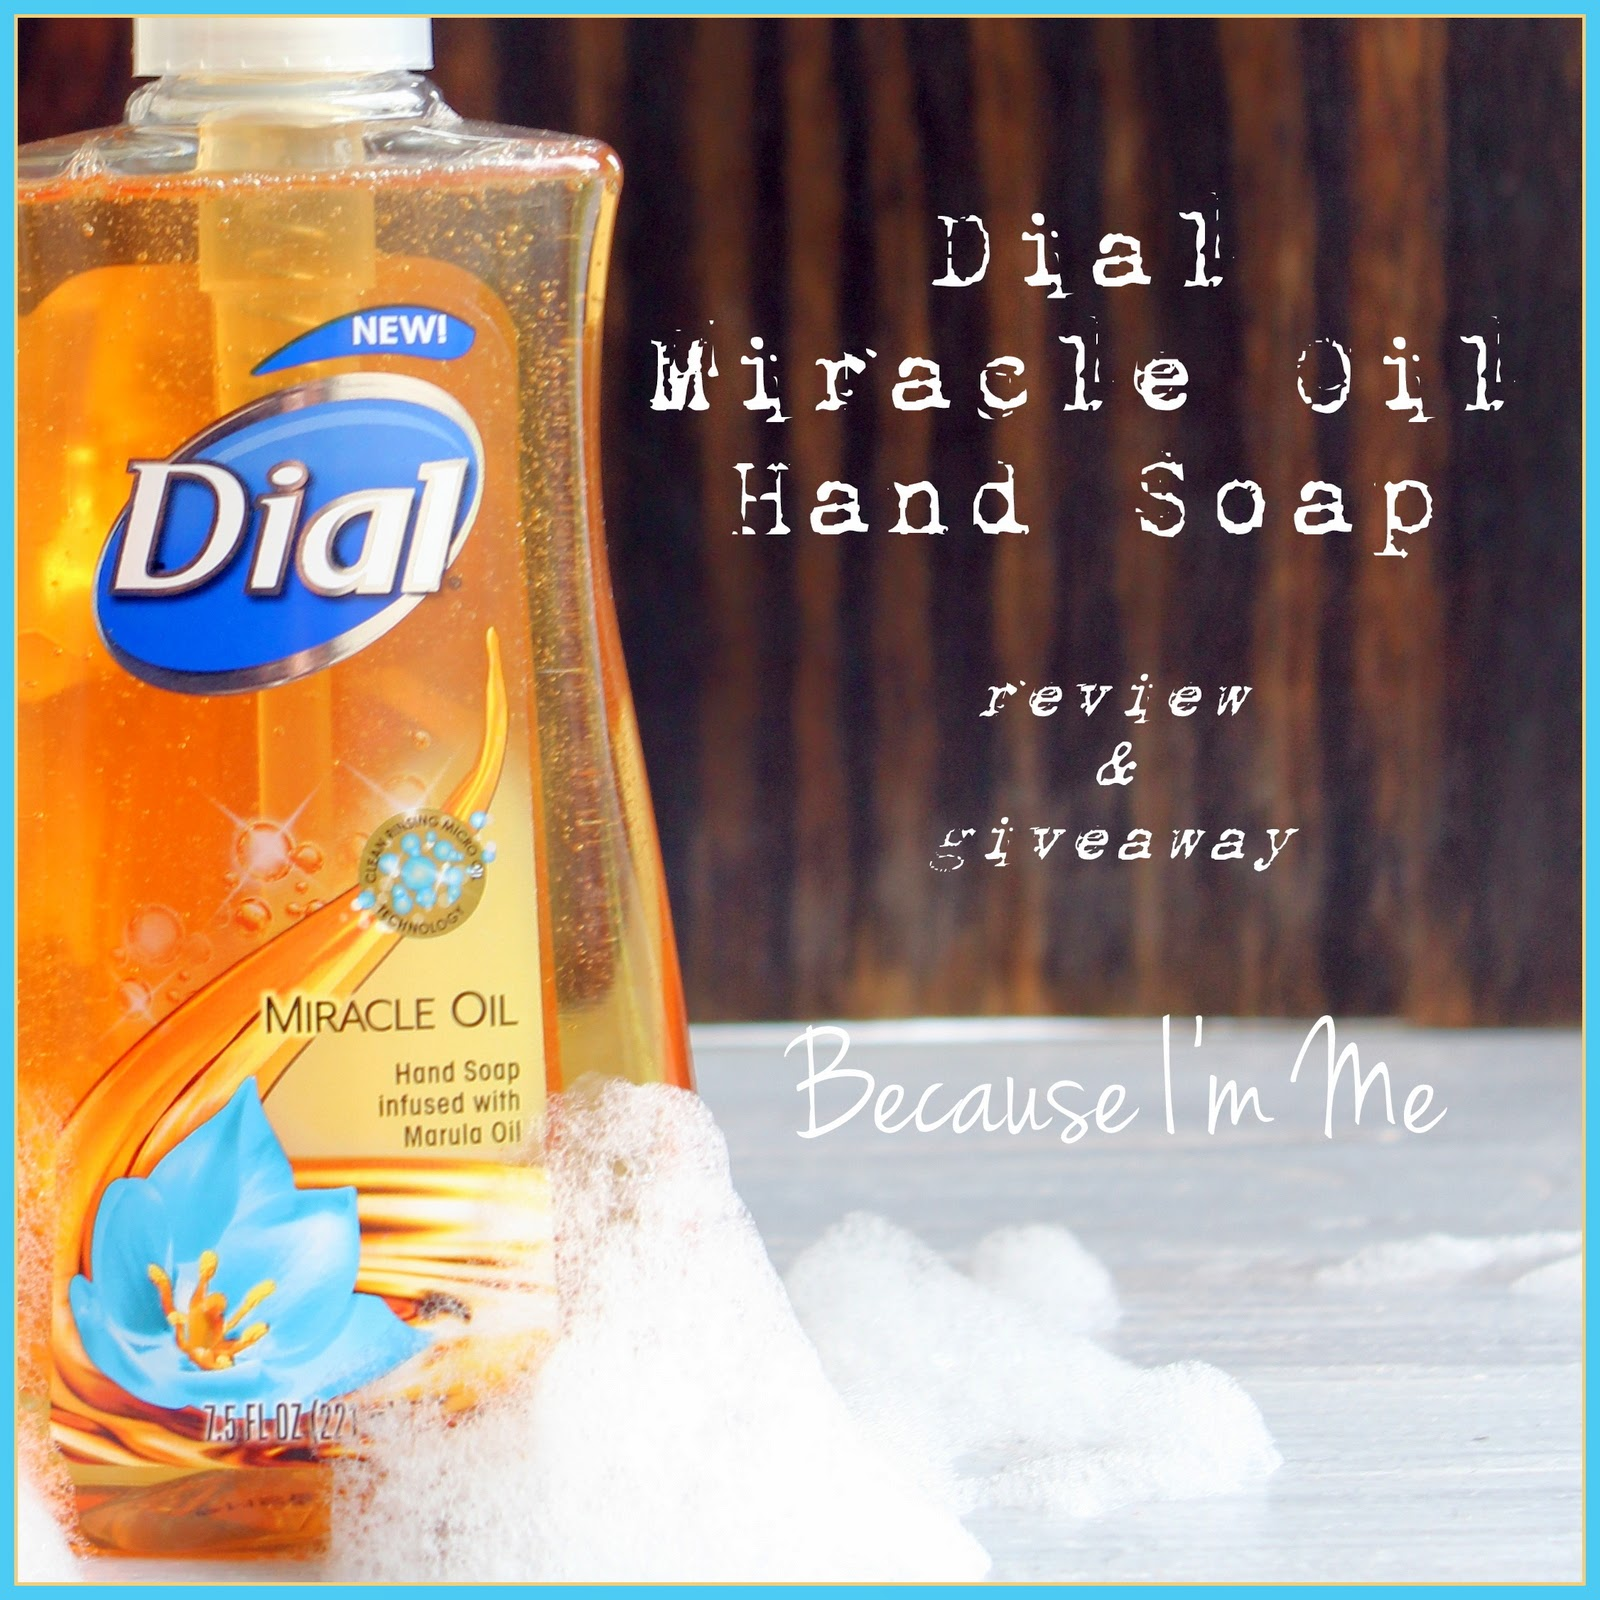 Dial Miracle Oil Review and Giveaway at Because I'm Me